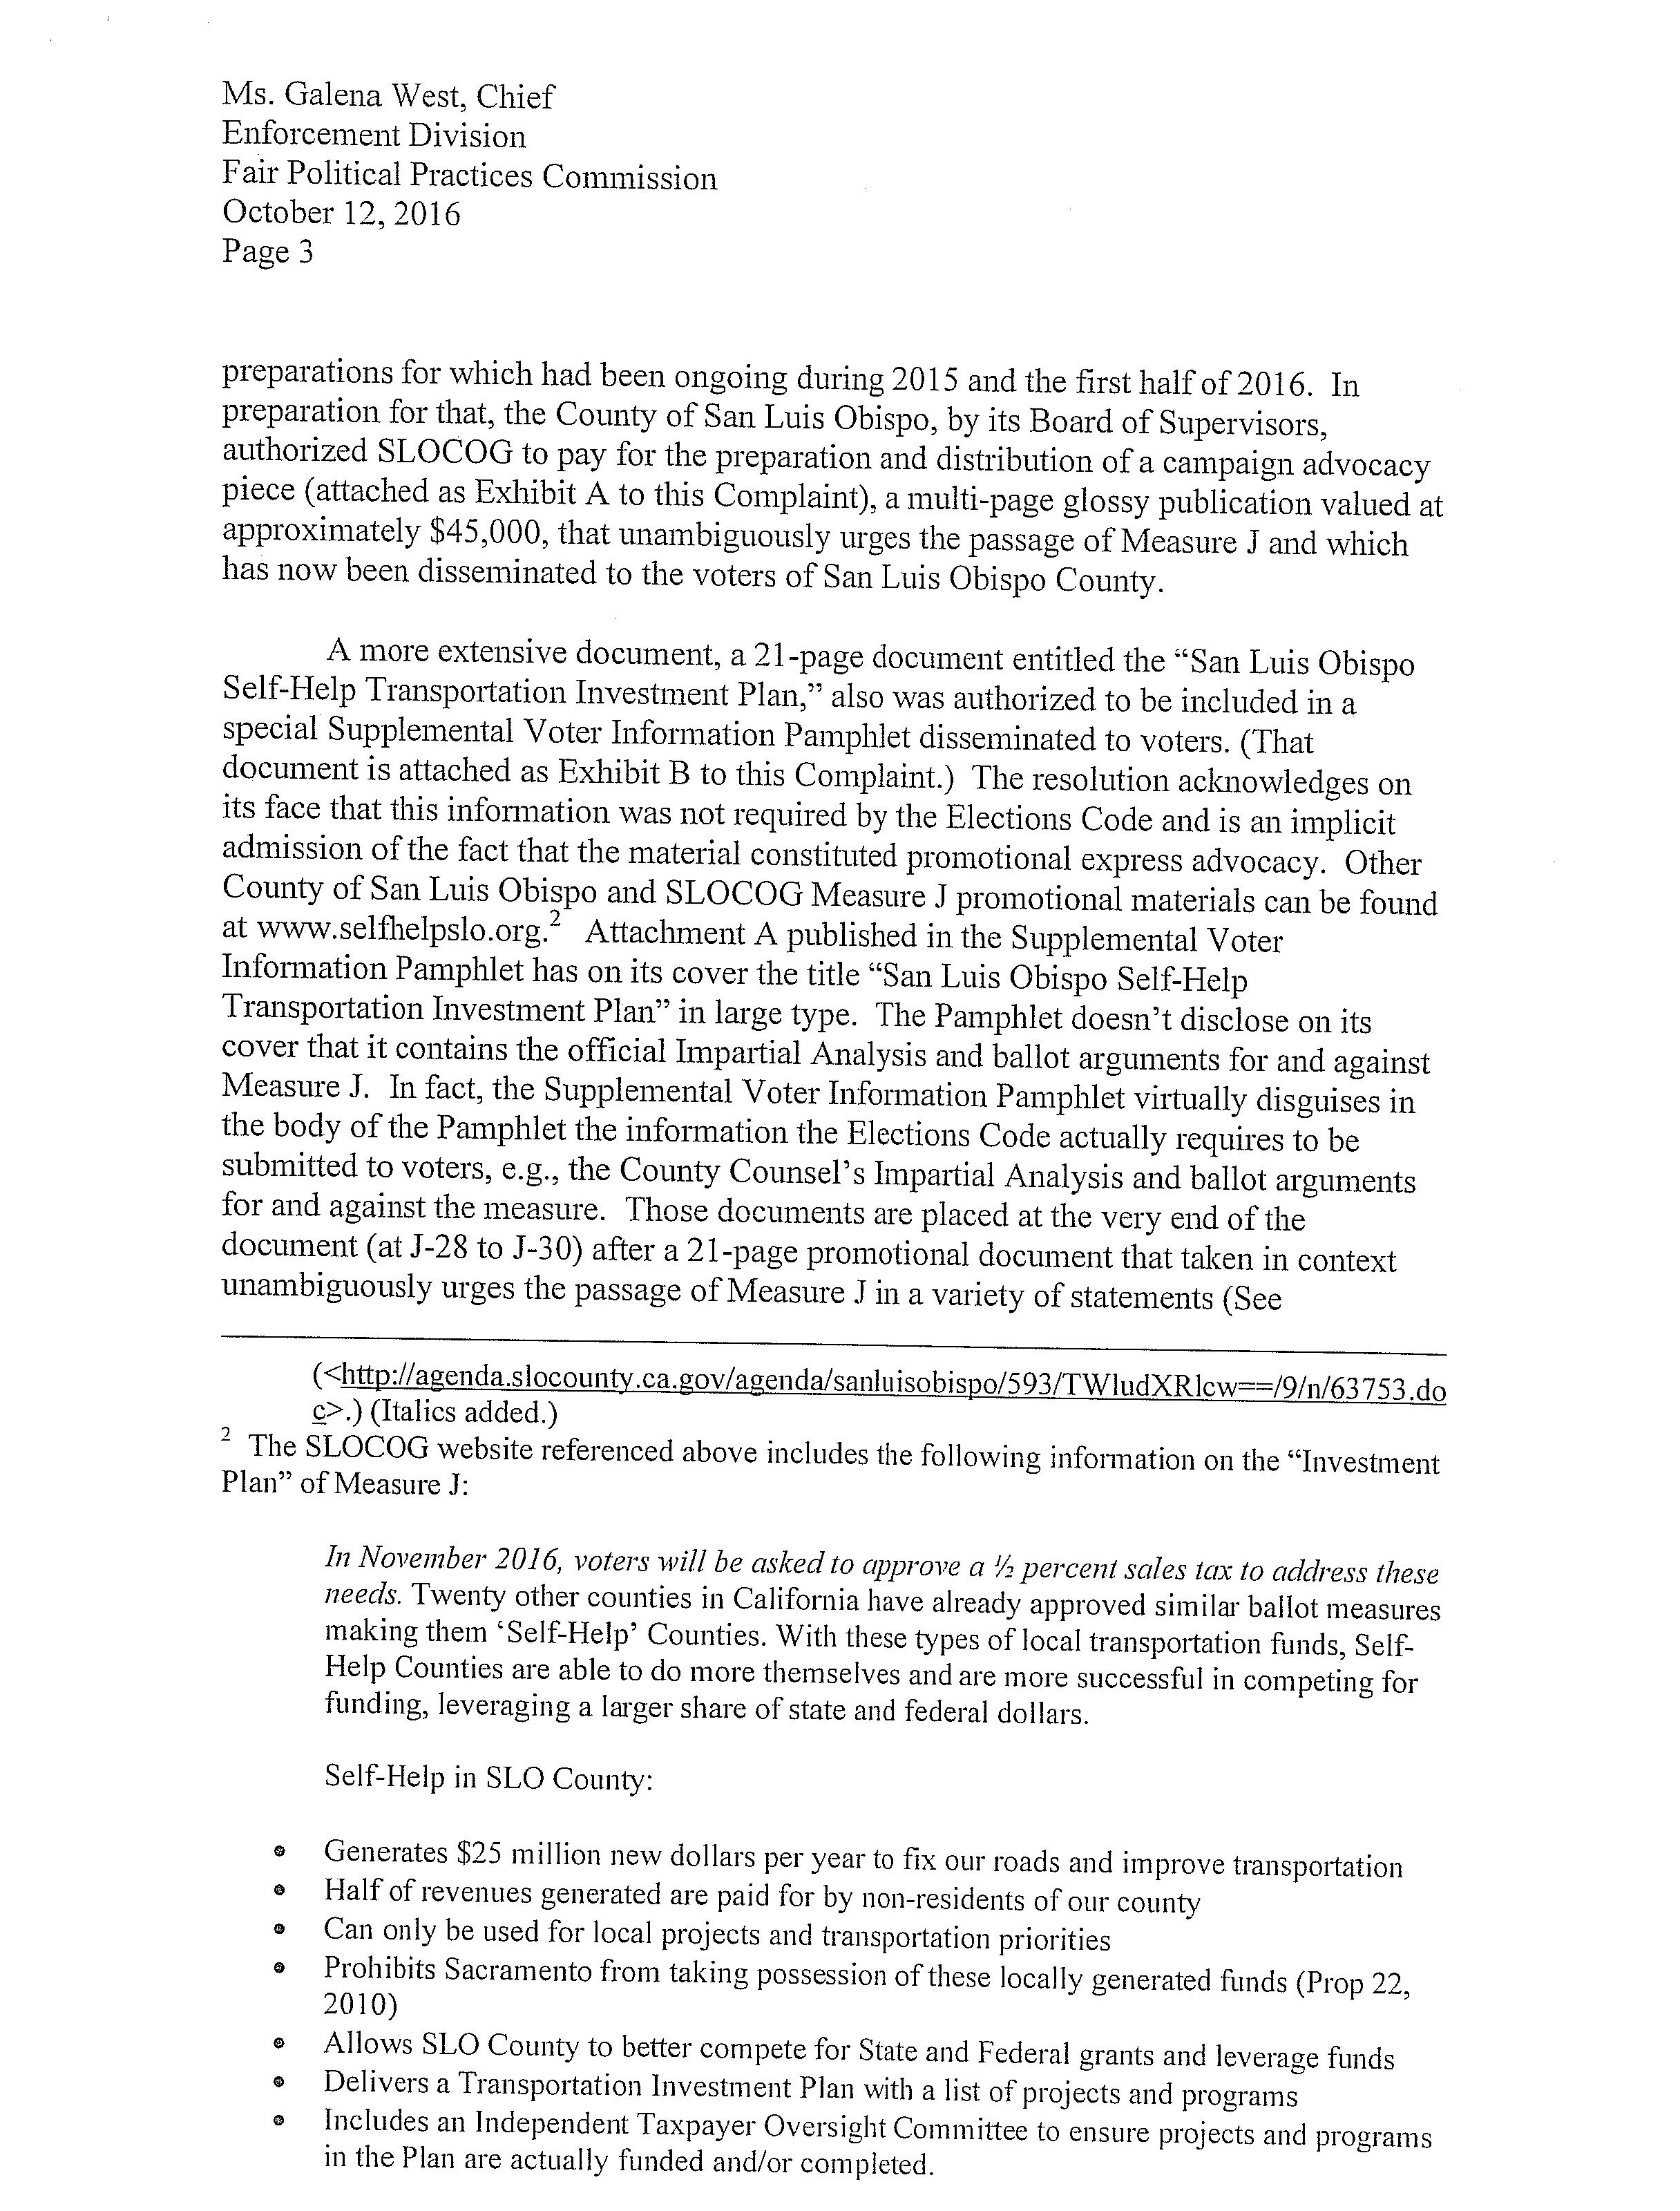 161210-fppc-complaint-slo-meas-j_page_3